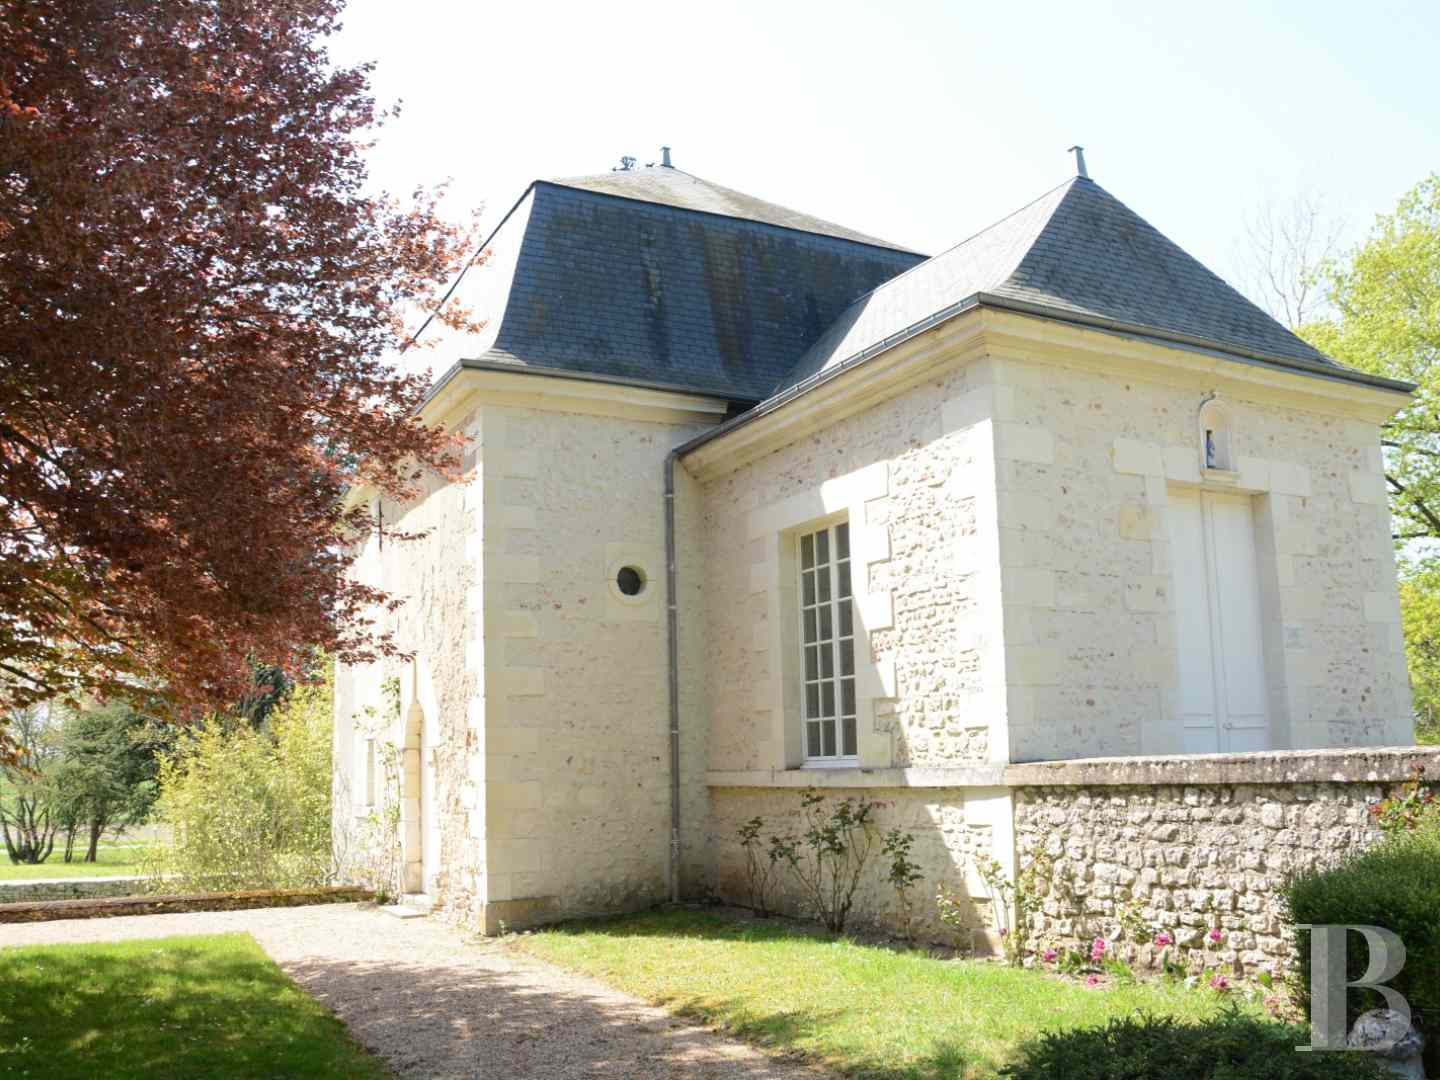 property for sale France center val de loire hunting grounds - 5 zoom